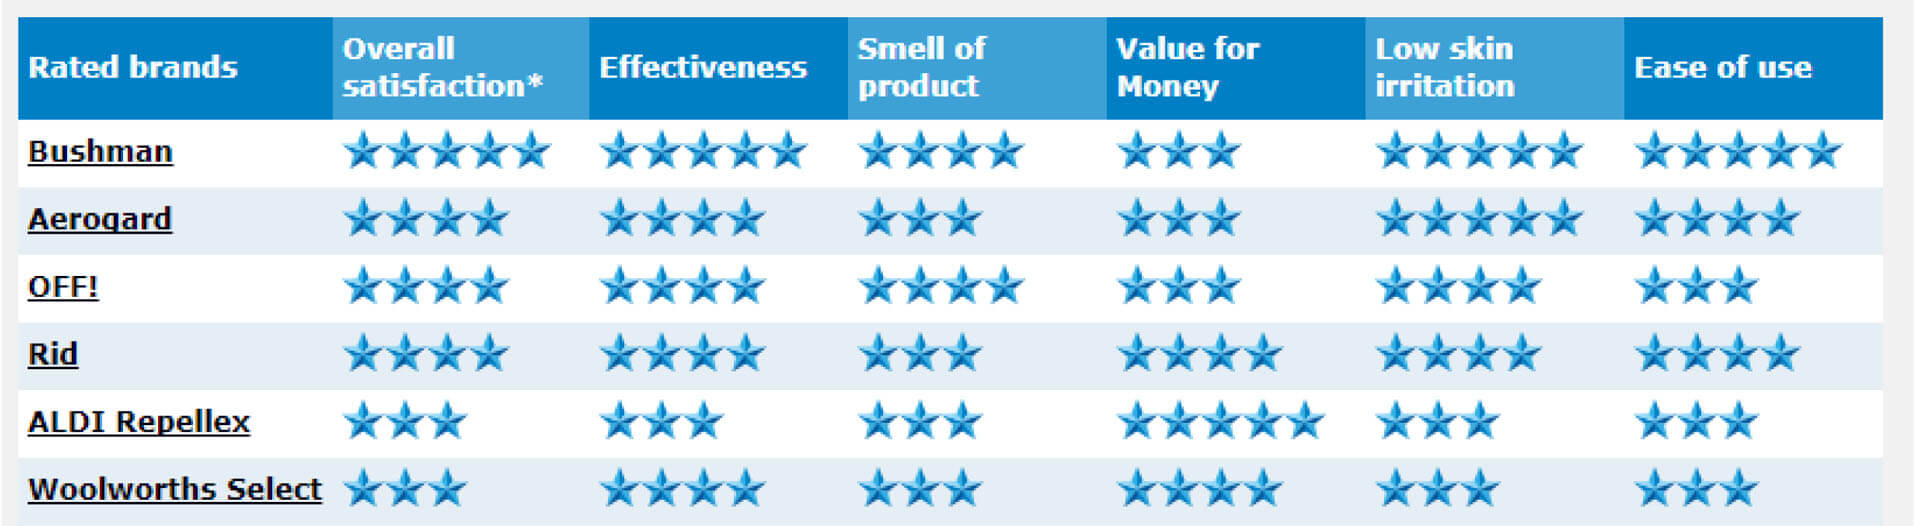 Canstar table comparing other repellent brands. Bushman ranks highest scoring 5 stars on 4 out of 6 catagories